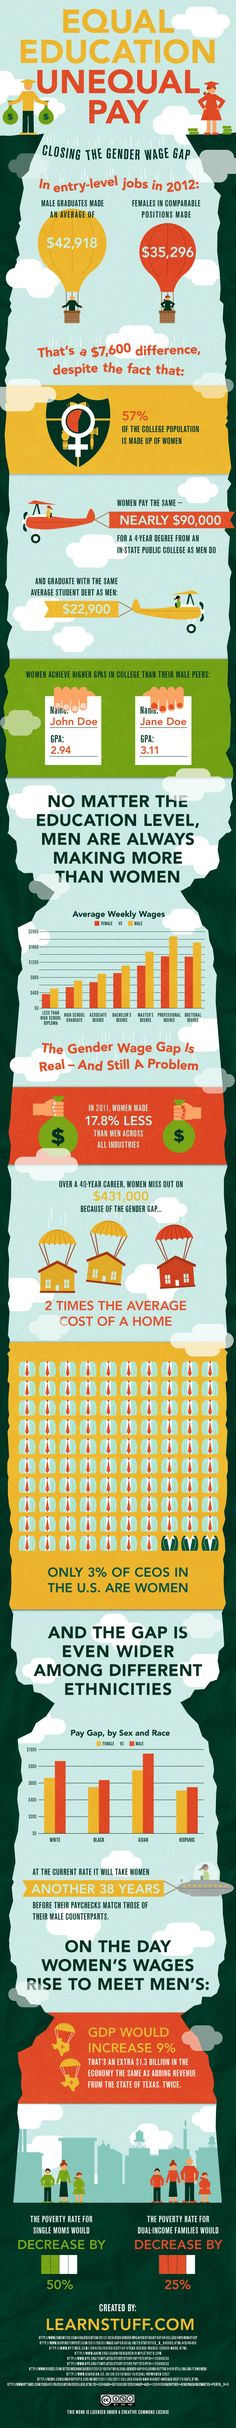 Equal Education/Unequal Pay - closing the gender wage gap.